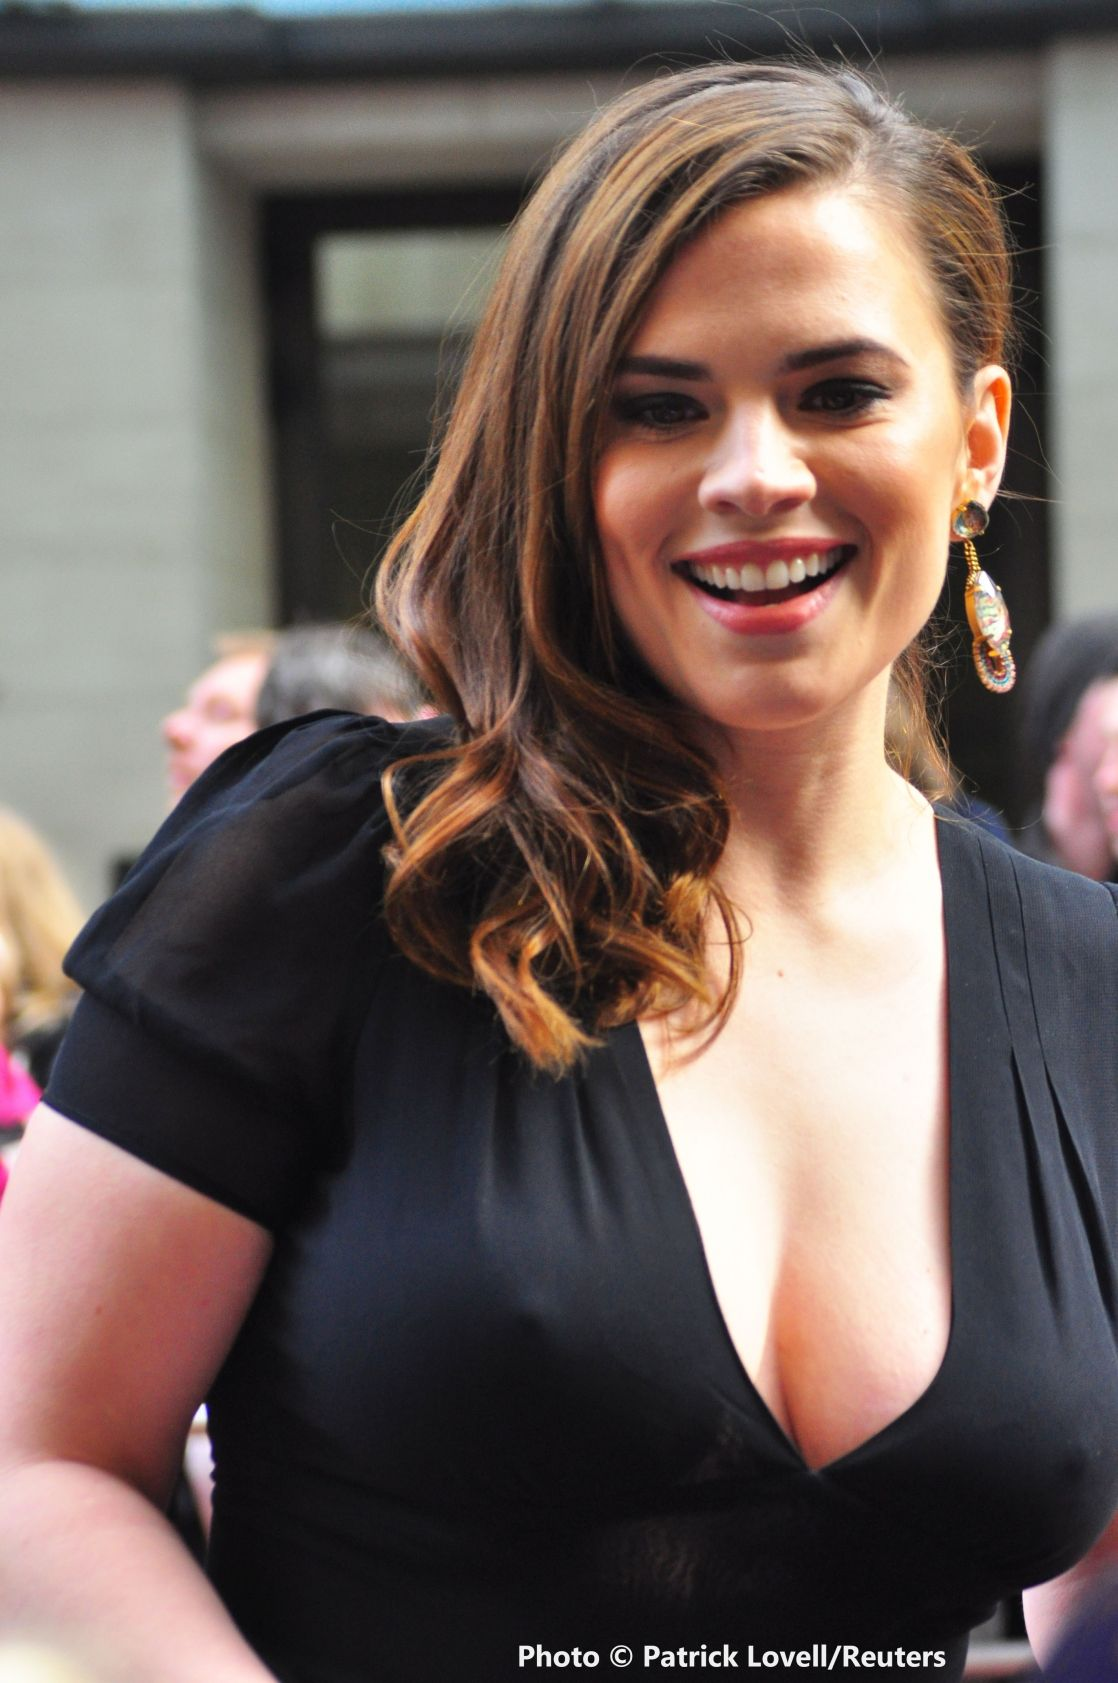 hayley atwell twitter